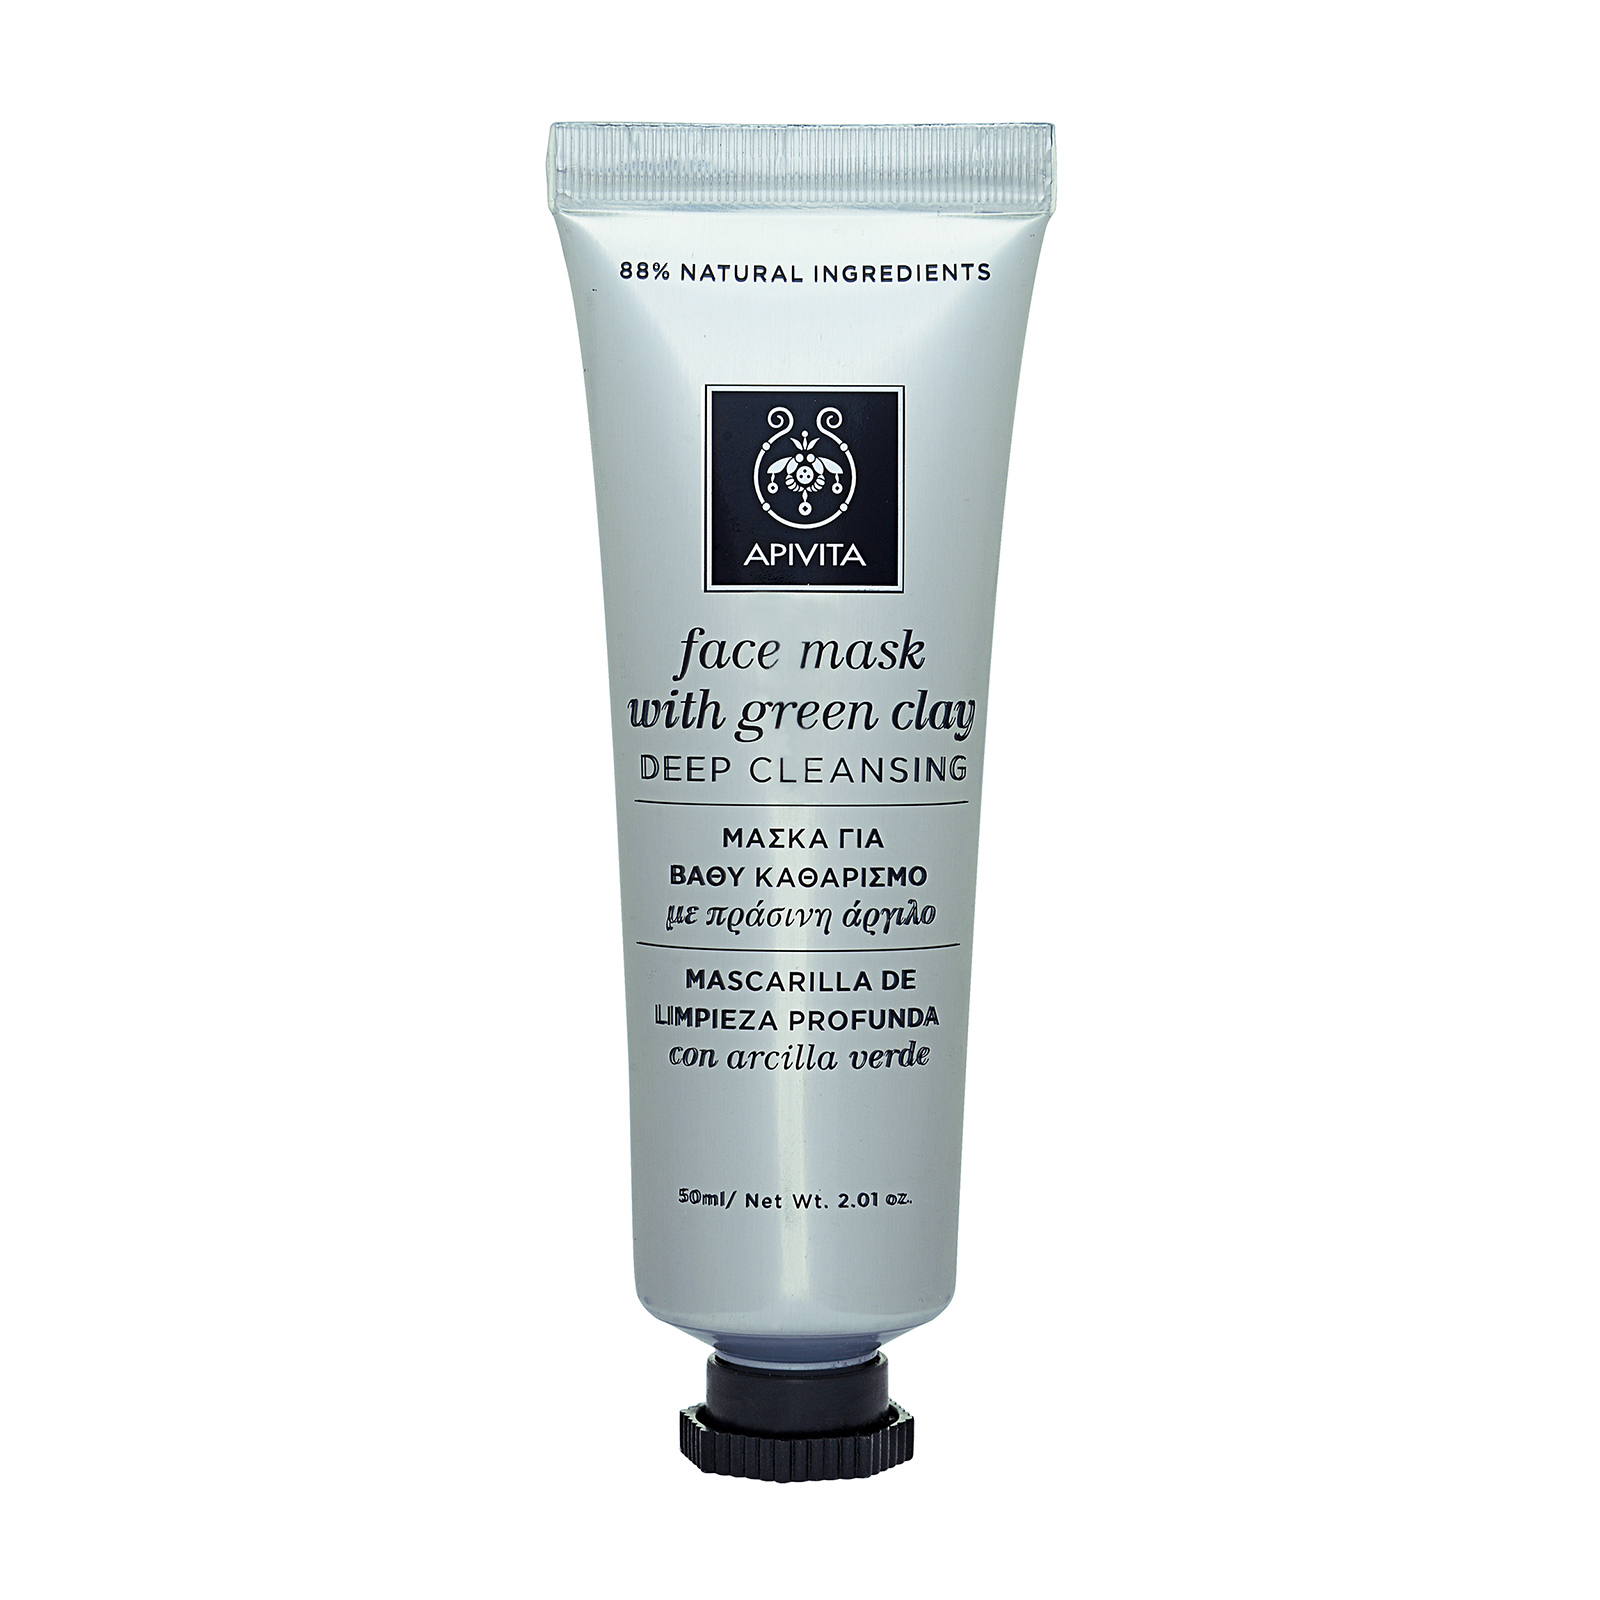 APIVITA  Deep Cleansing Face Mask with Green Clay (For Oily and Combination Skin)  2.01oz, 50ml from Cosme-De.com